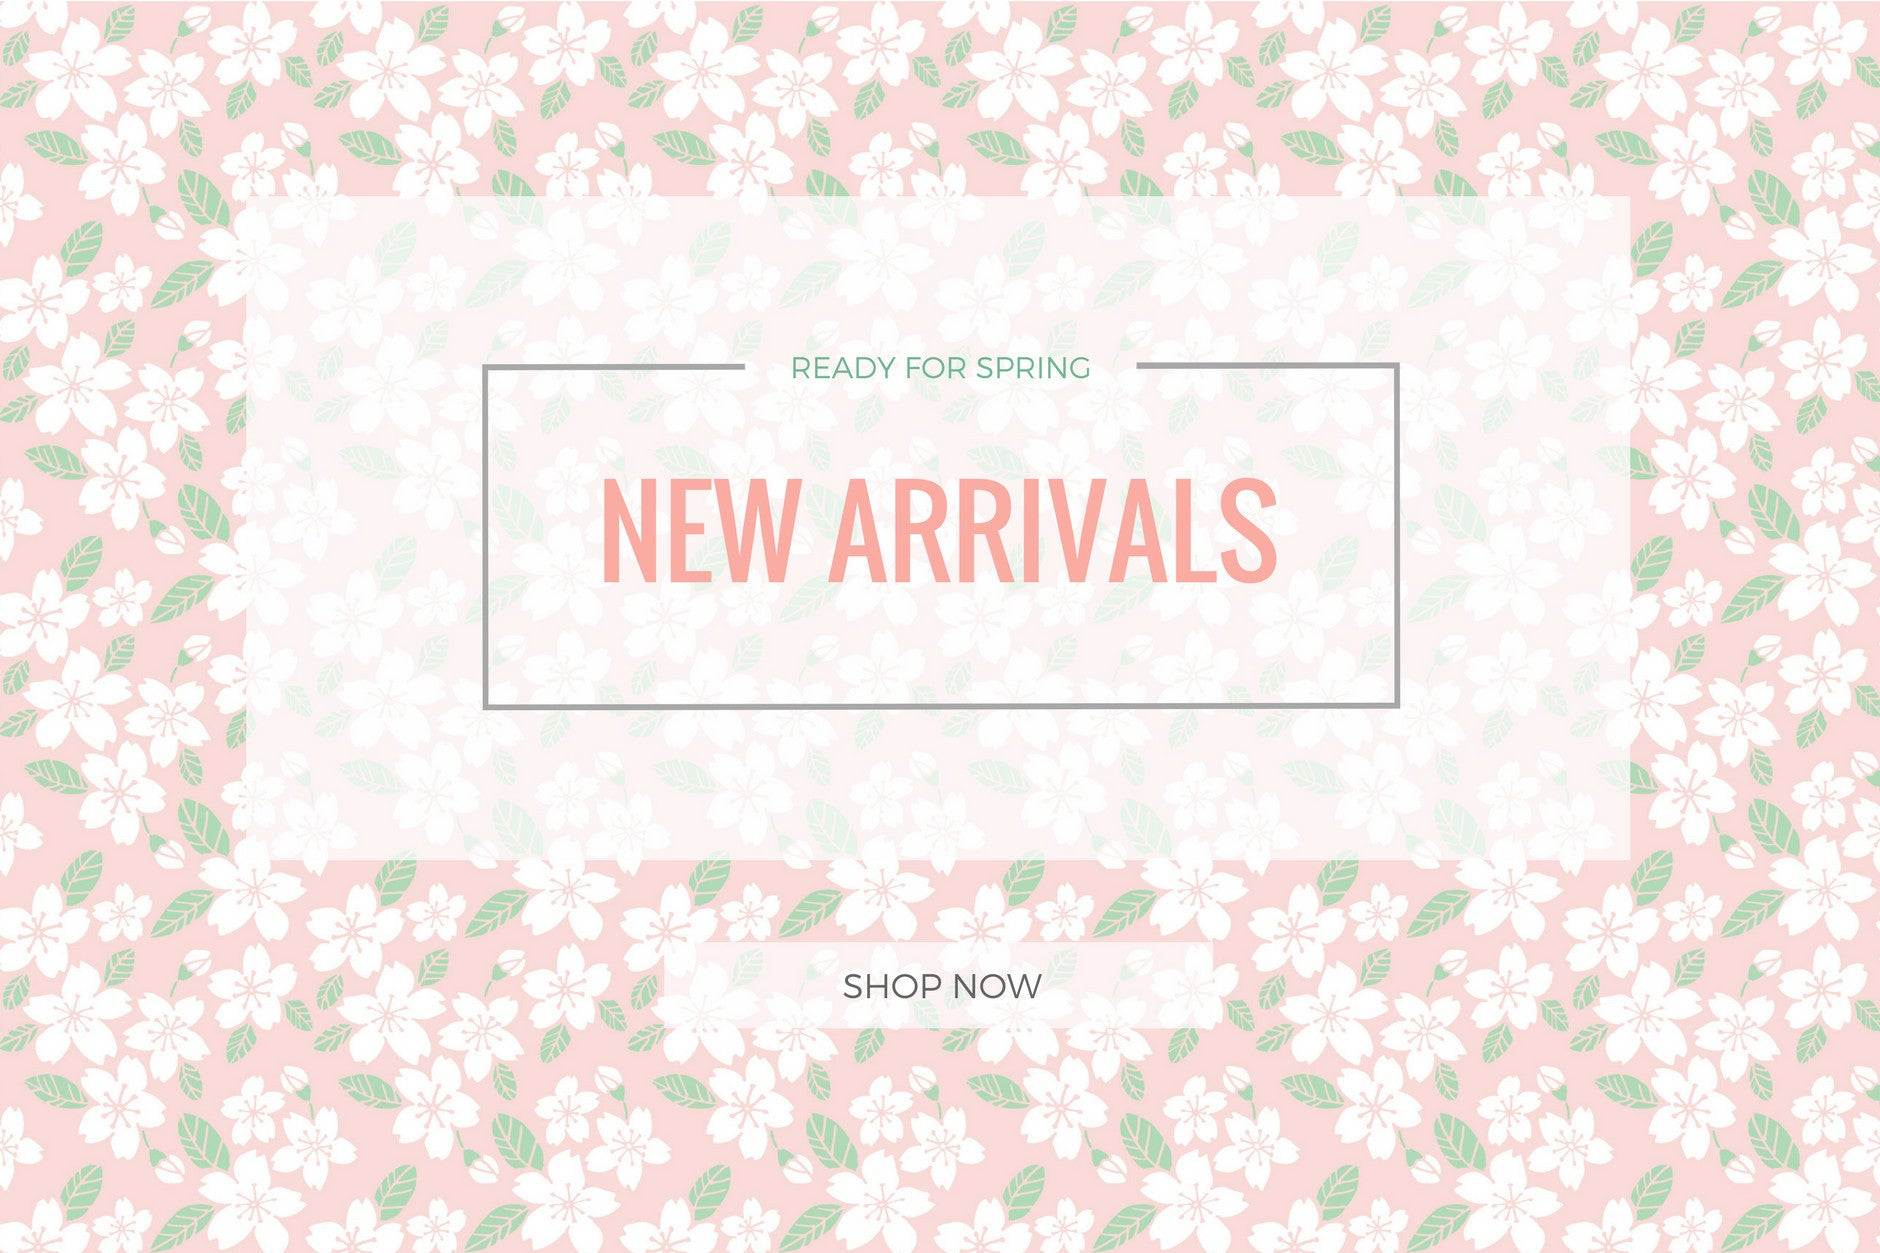 Kaktus new Arrivals. Spring styles: dresses, skirts, tops, and more.